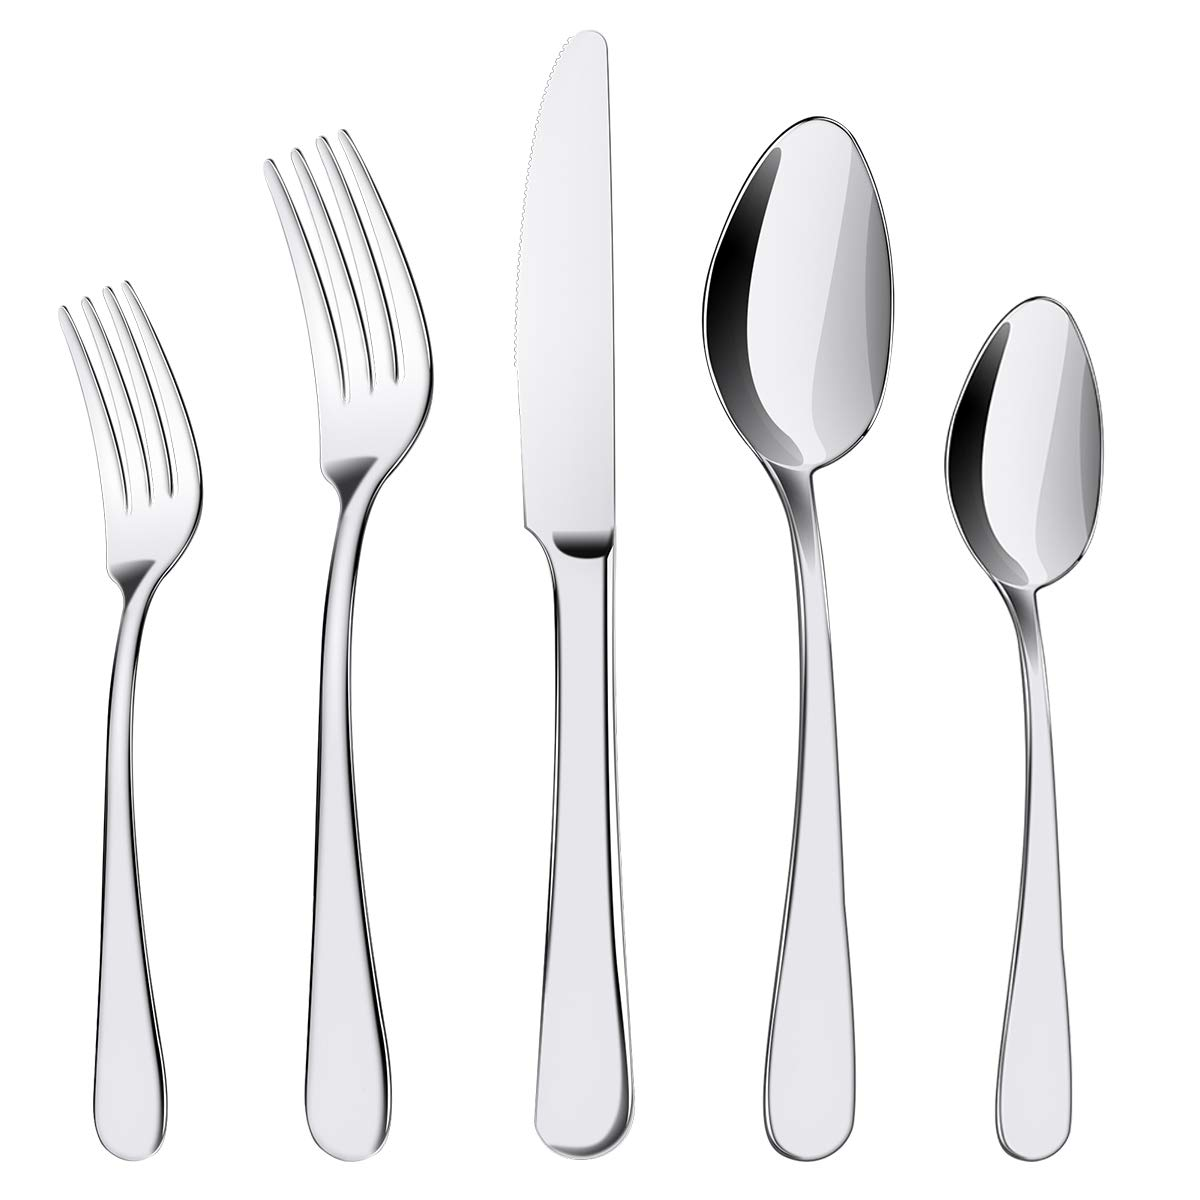 ENLOY 20 Pieces Flatware Set, 18/0 Stainless Steel Utensils, Service for 4, Heavy Duty Silverware Gift, Heavyweight Cutlery, Dishwasher Safe, Mirror Polished Dinner Knife, Fork, Spoon for Restaurant